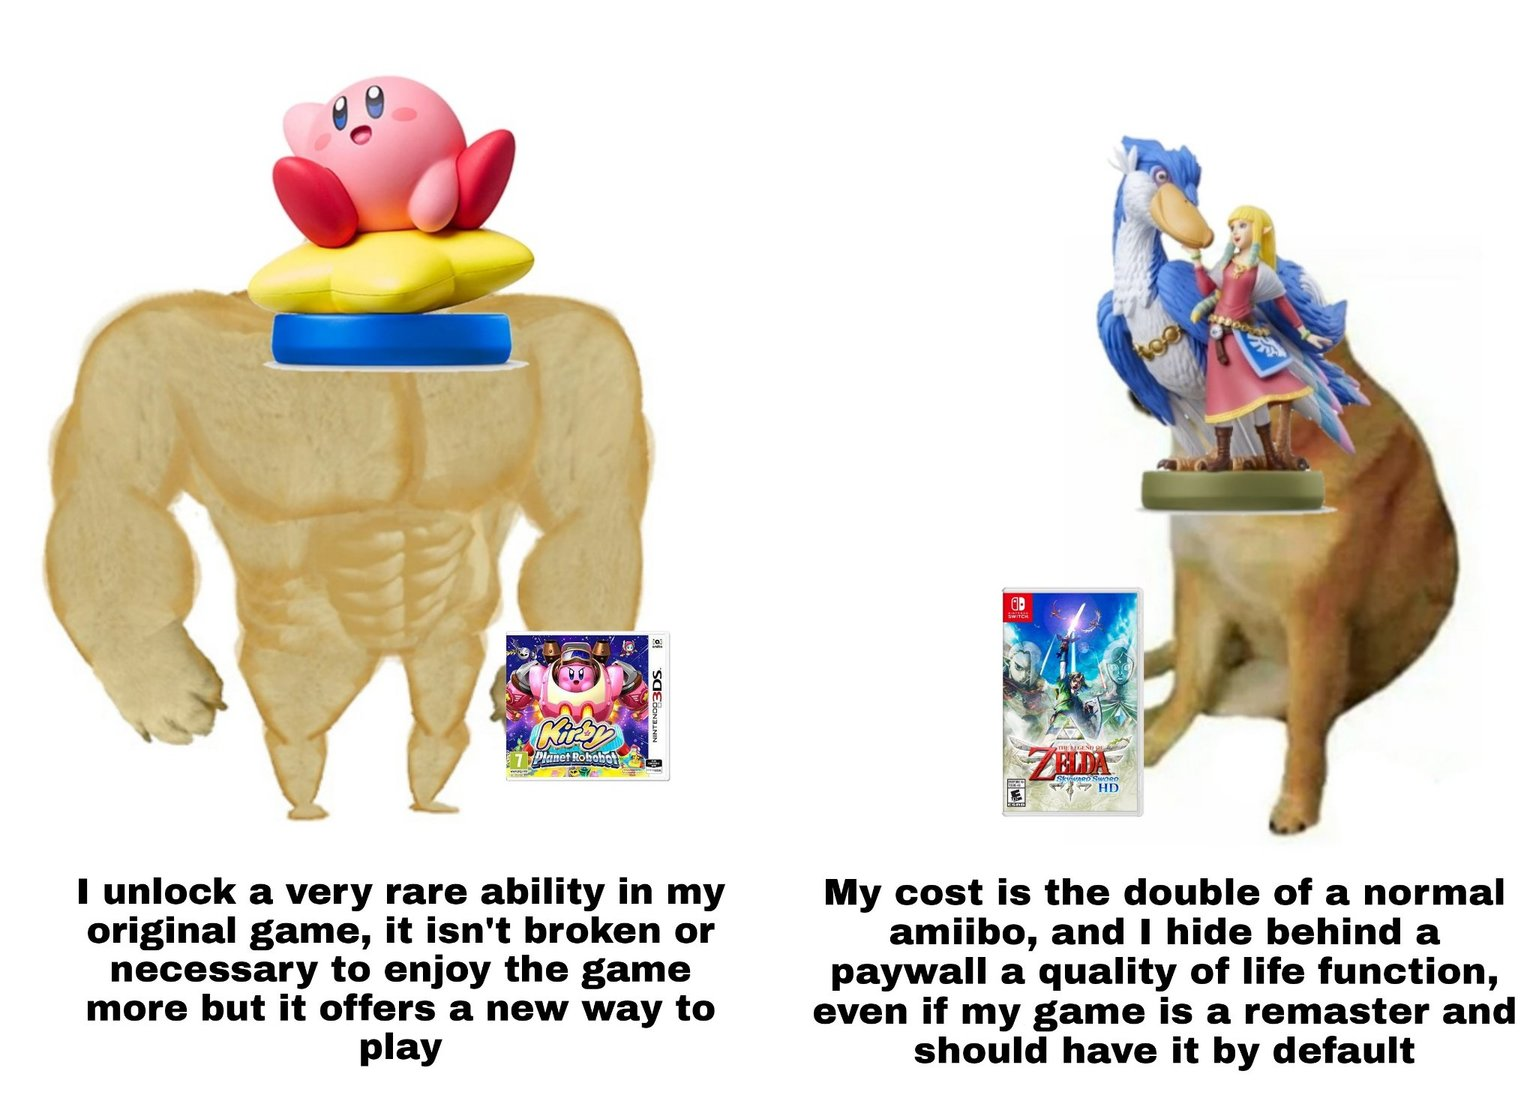 Nintendo taking its consumers as idiots for the 89th time - meme